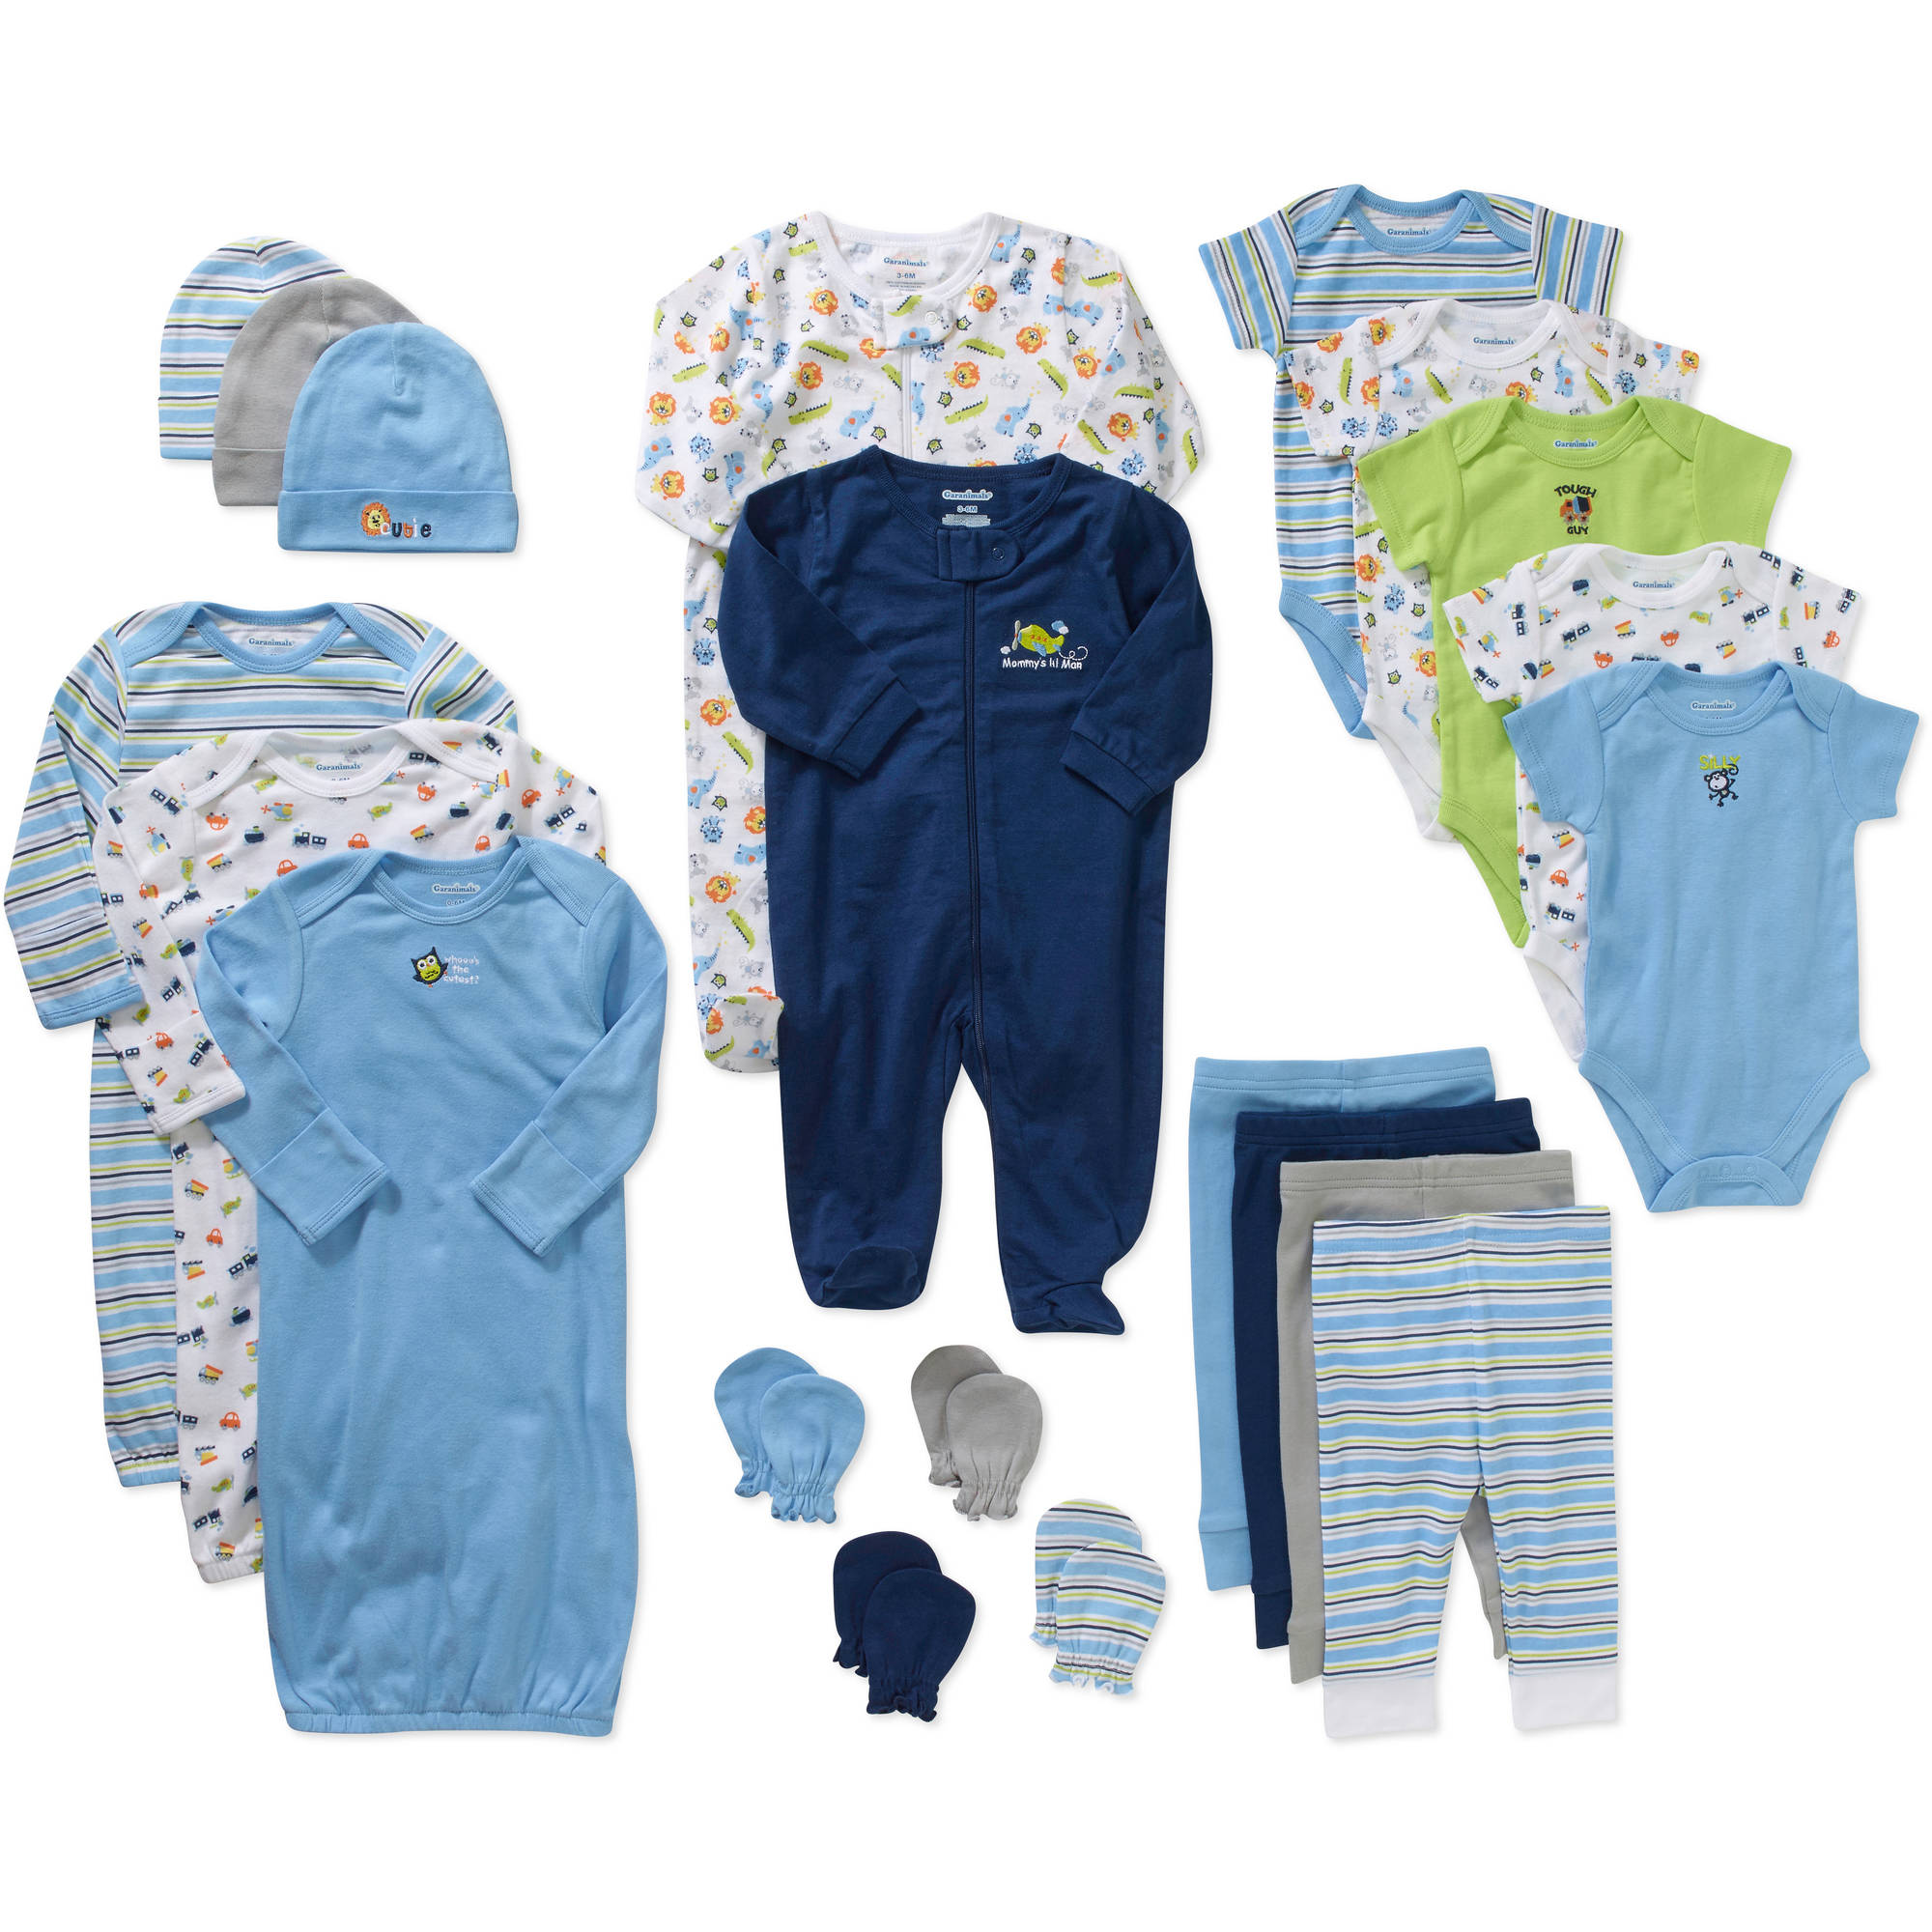 8110e413dcea6 About This Bundle. The Garanimals newborn baby perfect shower gift ...